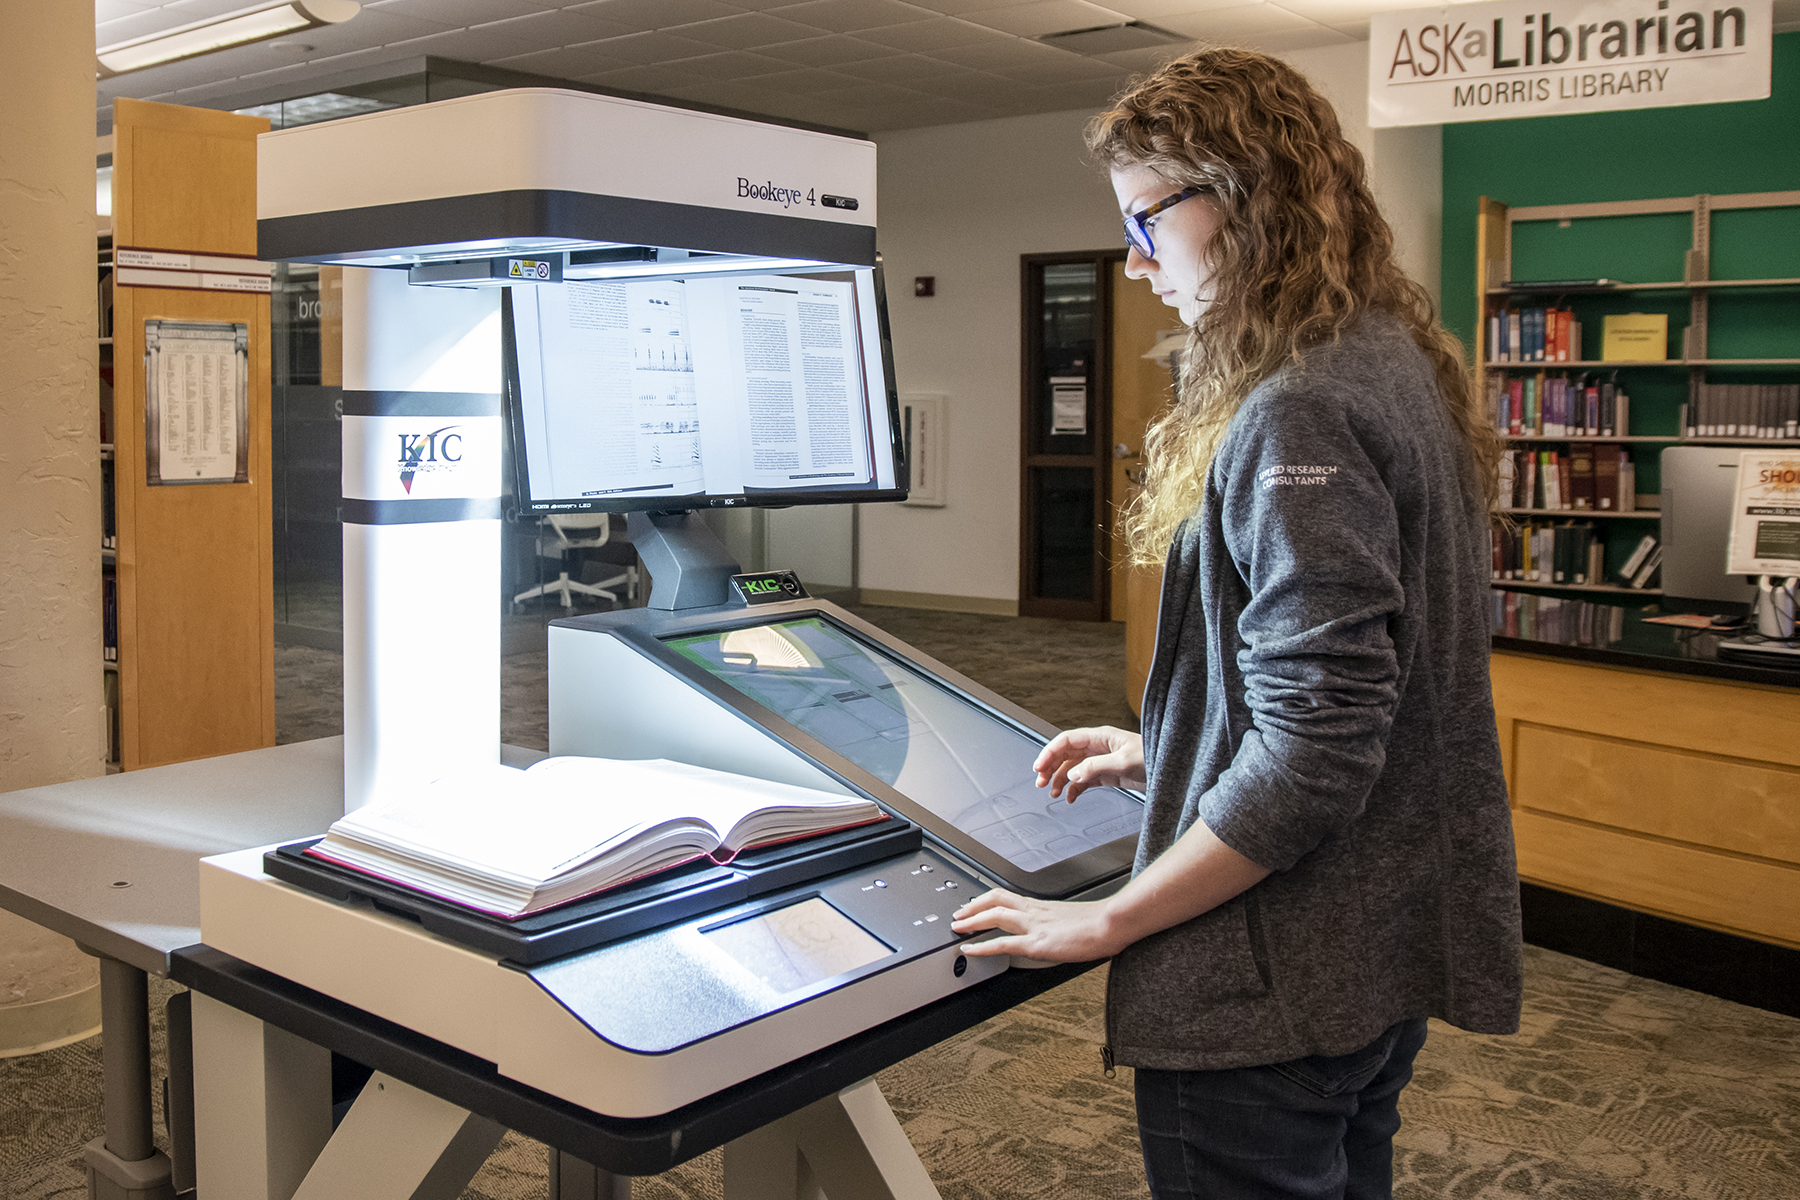 Student uses SIU Morris Library SIU Morris Library Knowledge Imaging Center Bookeye 4 system